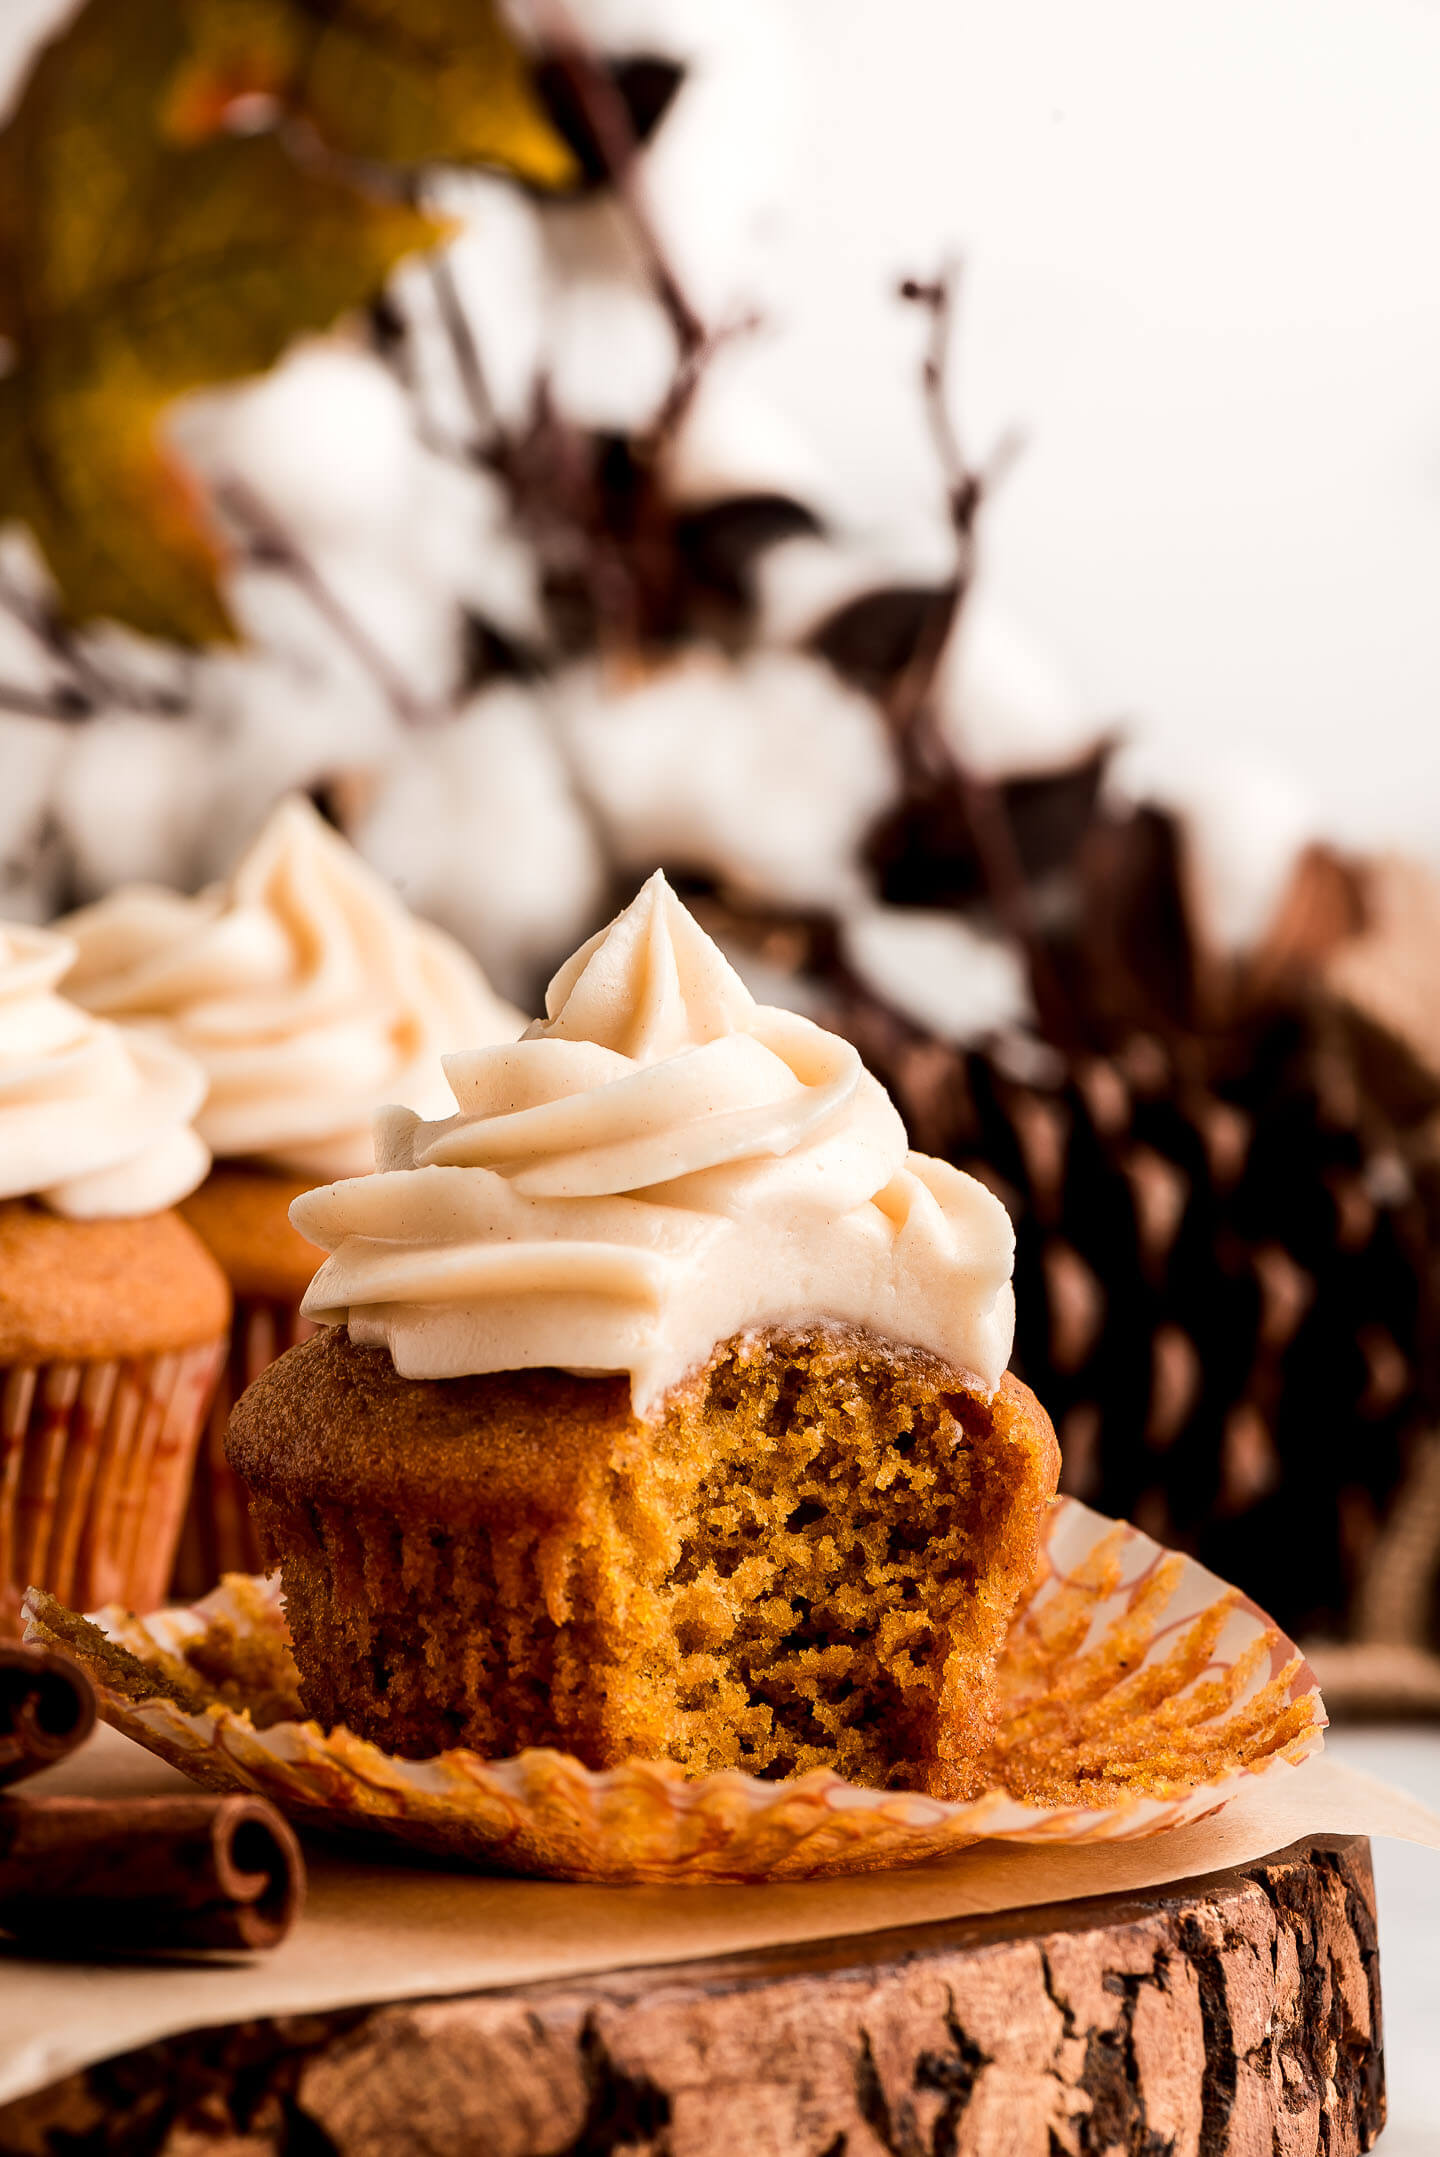 A Pumpkin Cupcake topped with cinnamon Cream Cheese Frosting with a bite taken out.